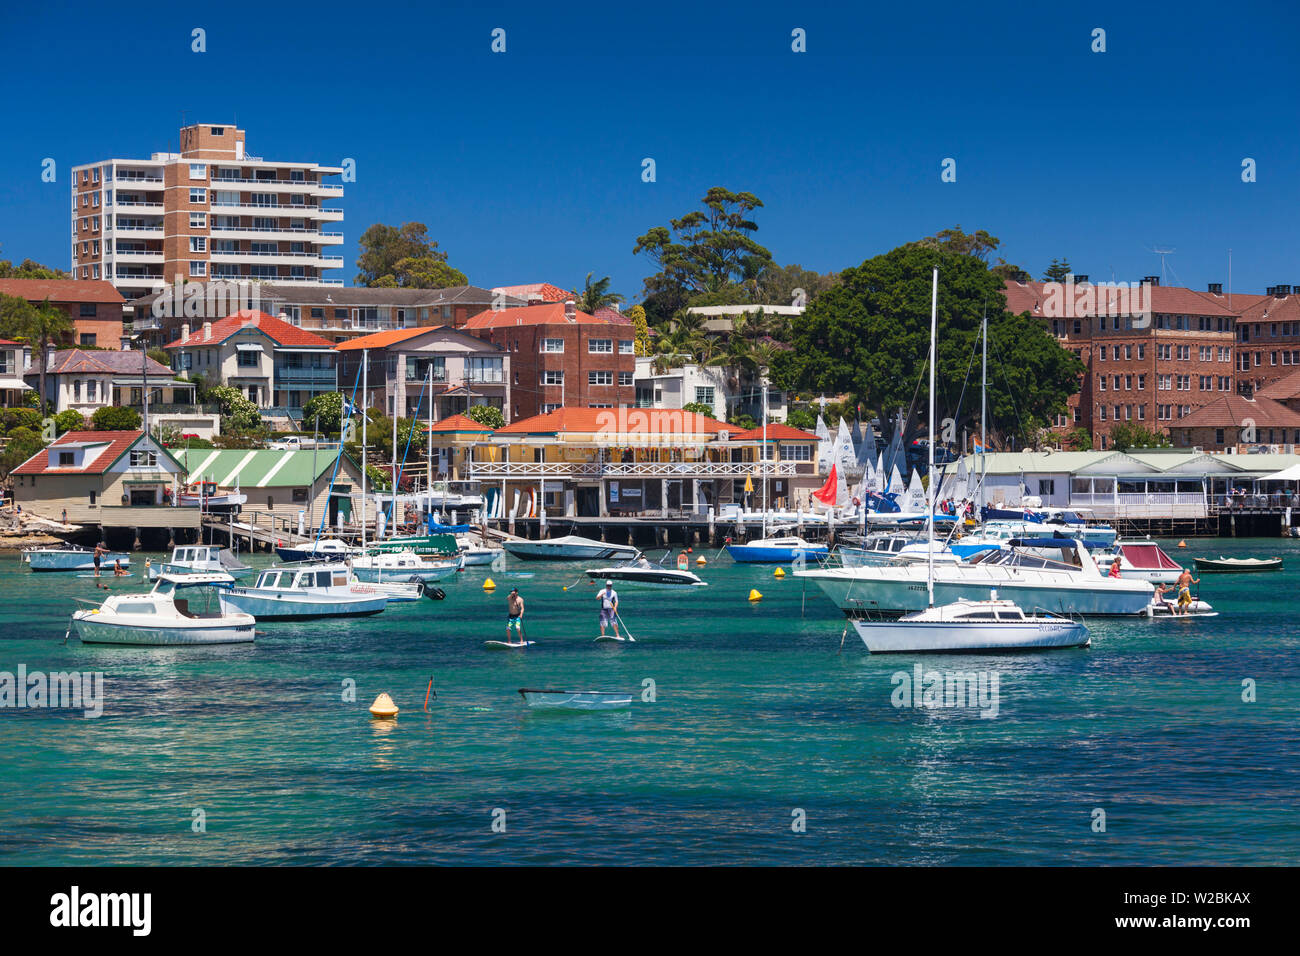 Australia, New South Wales, NSW, Sydney, Manly, Manly Cove - Stock Image